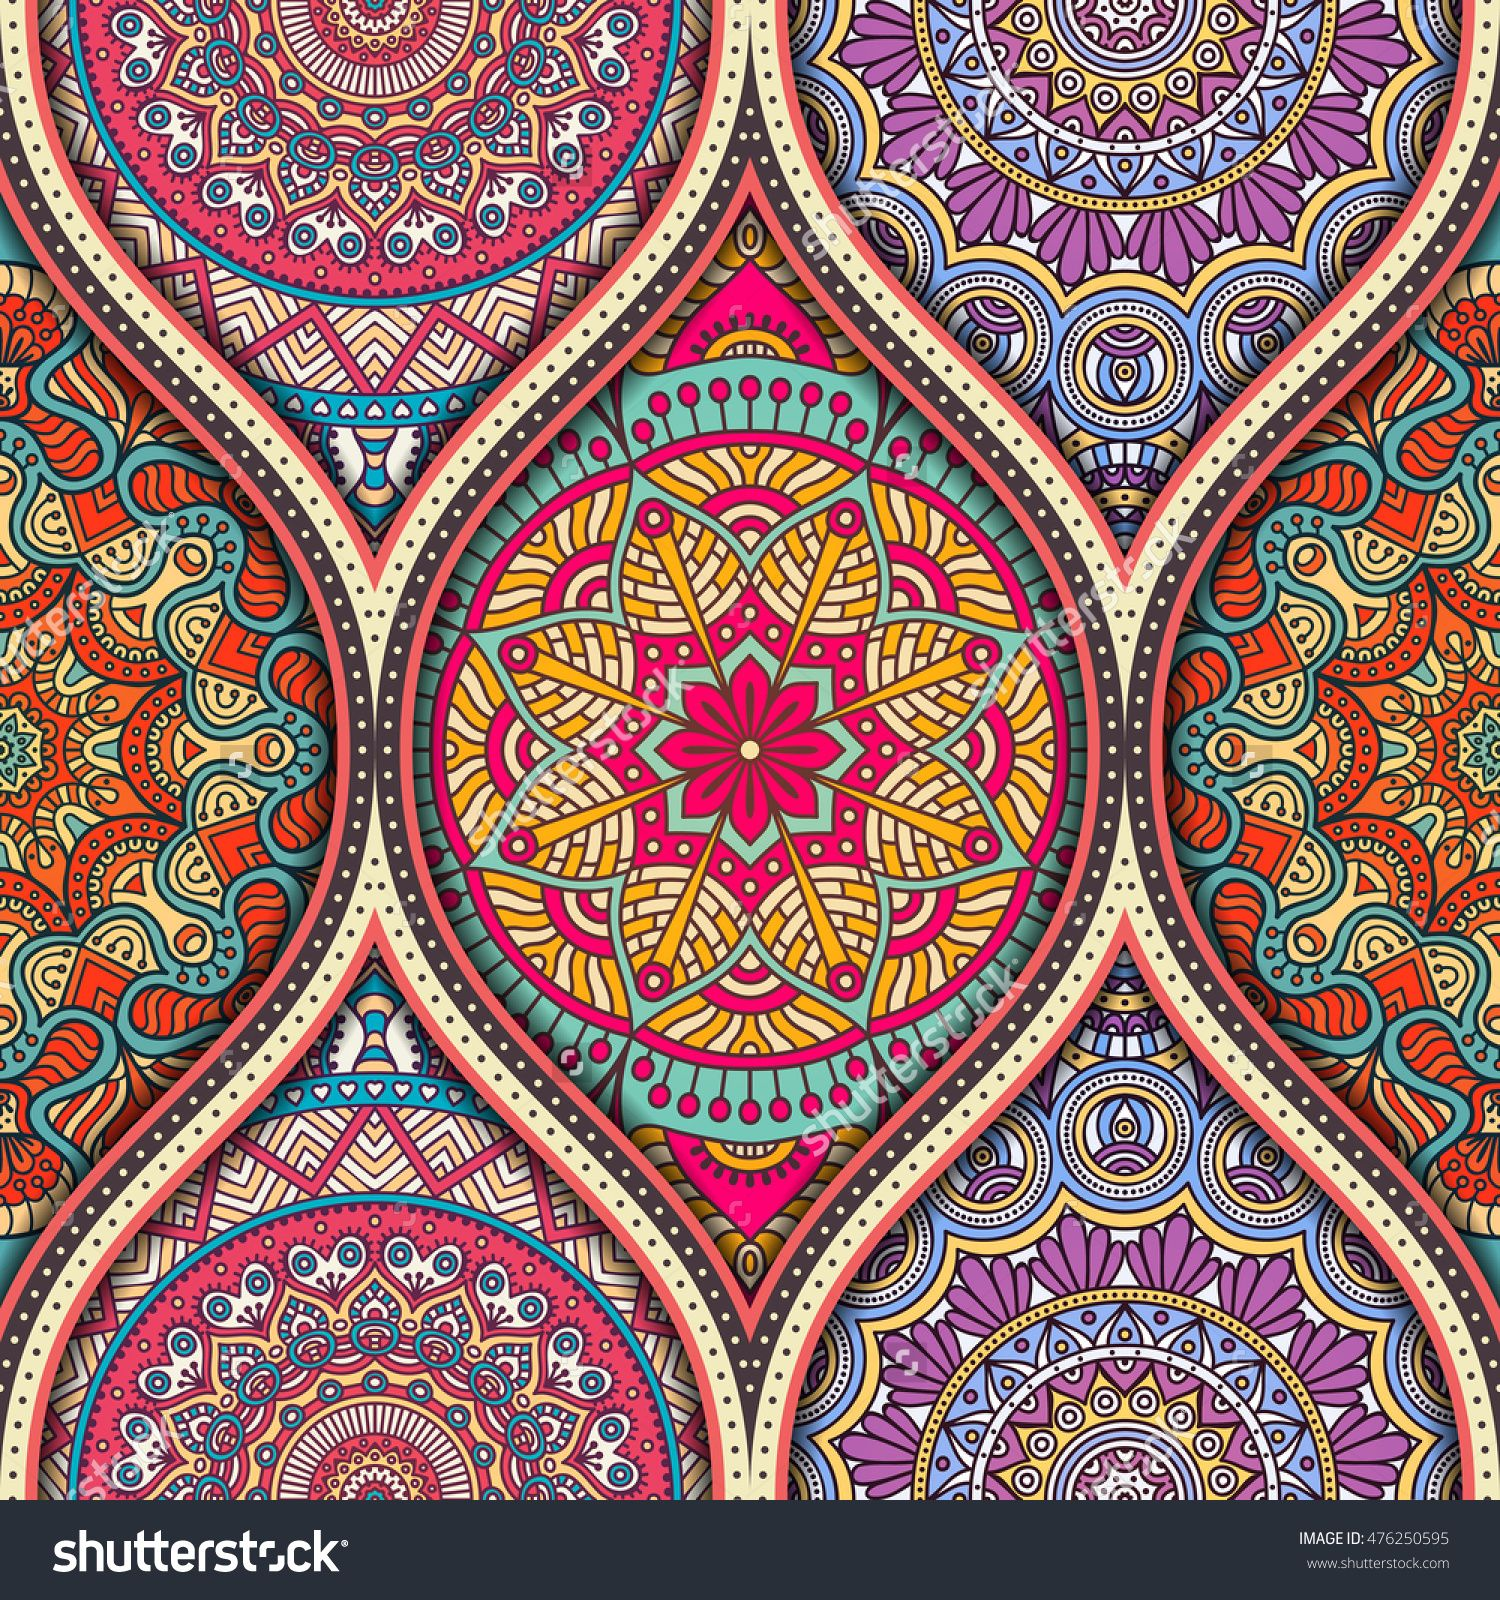 Tiles Decor Seamless Pattern Tile With Mandalasvintage Decorative Elements